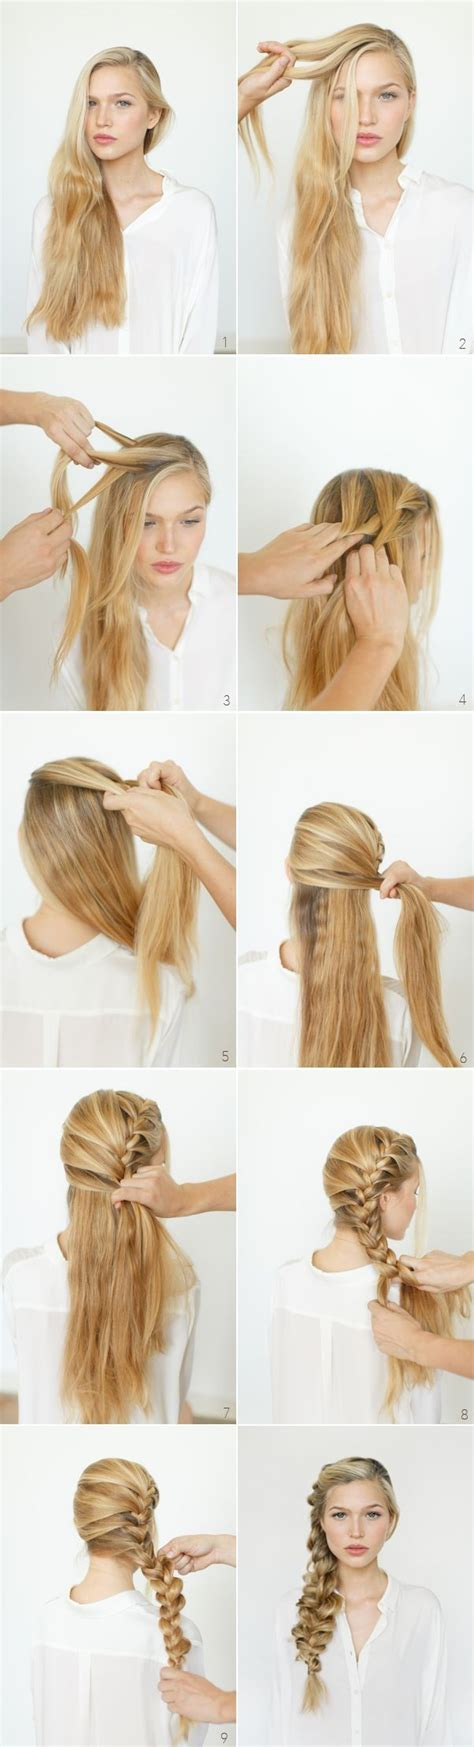 easy braided hairstyles for long hair step by step step by step hairstyles for long hair long hairstyles